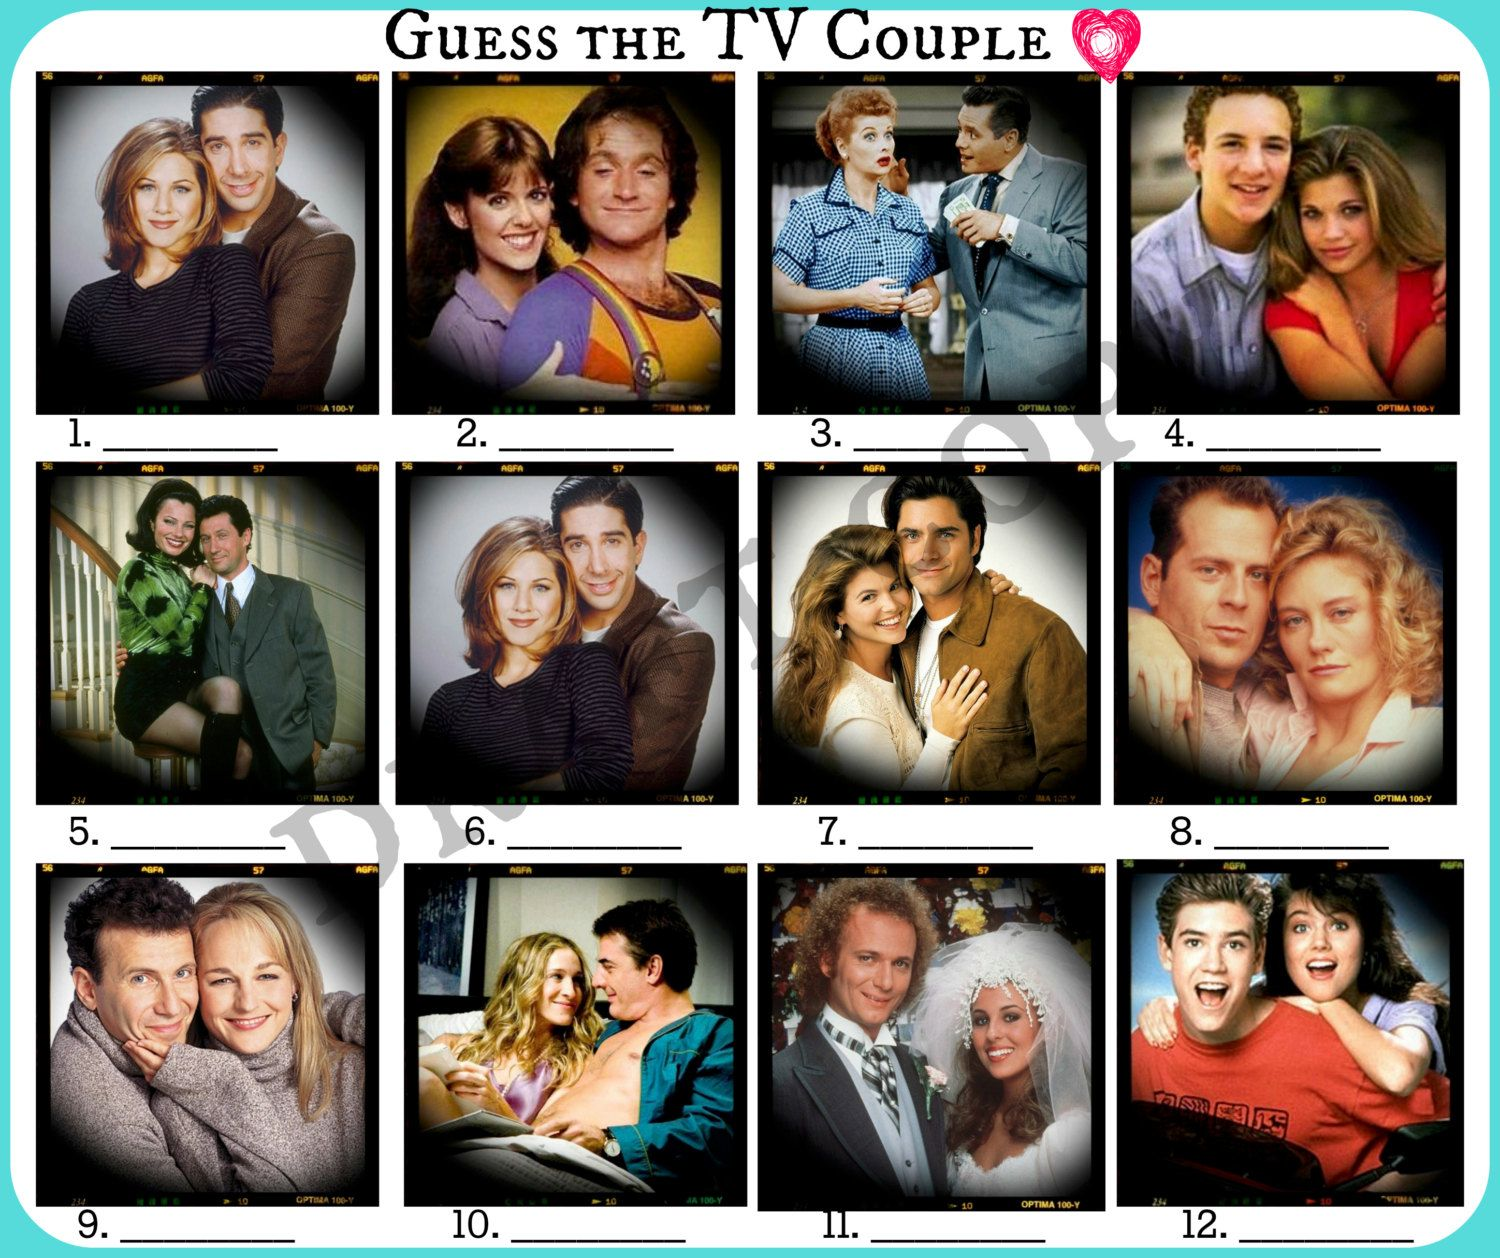 Guess The Famous Tv Couple Game Bachelorette Party Game Famous Tv Couples Bachelorette Party Games Bridal Bachelorette Party